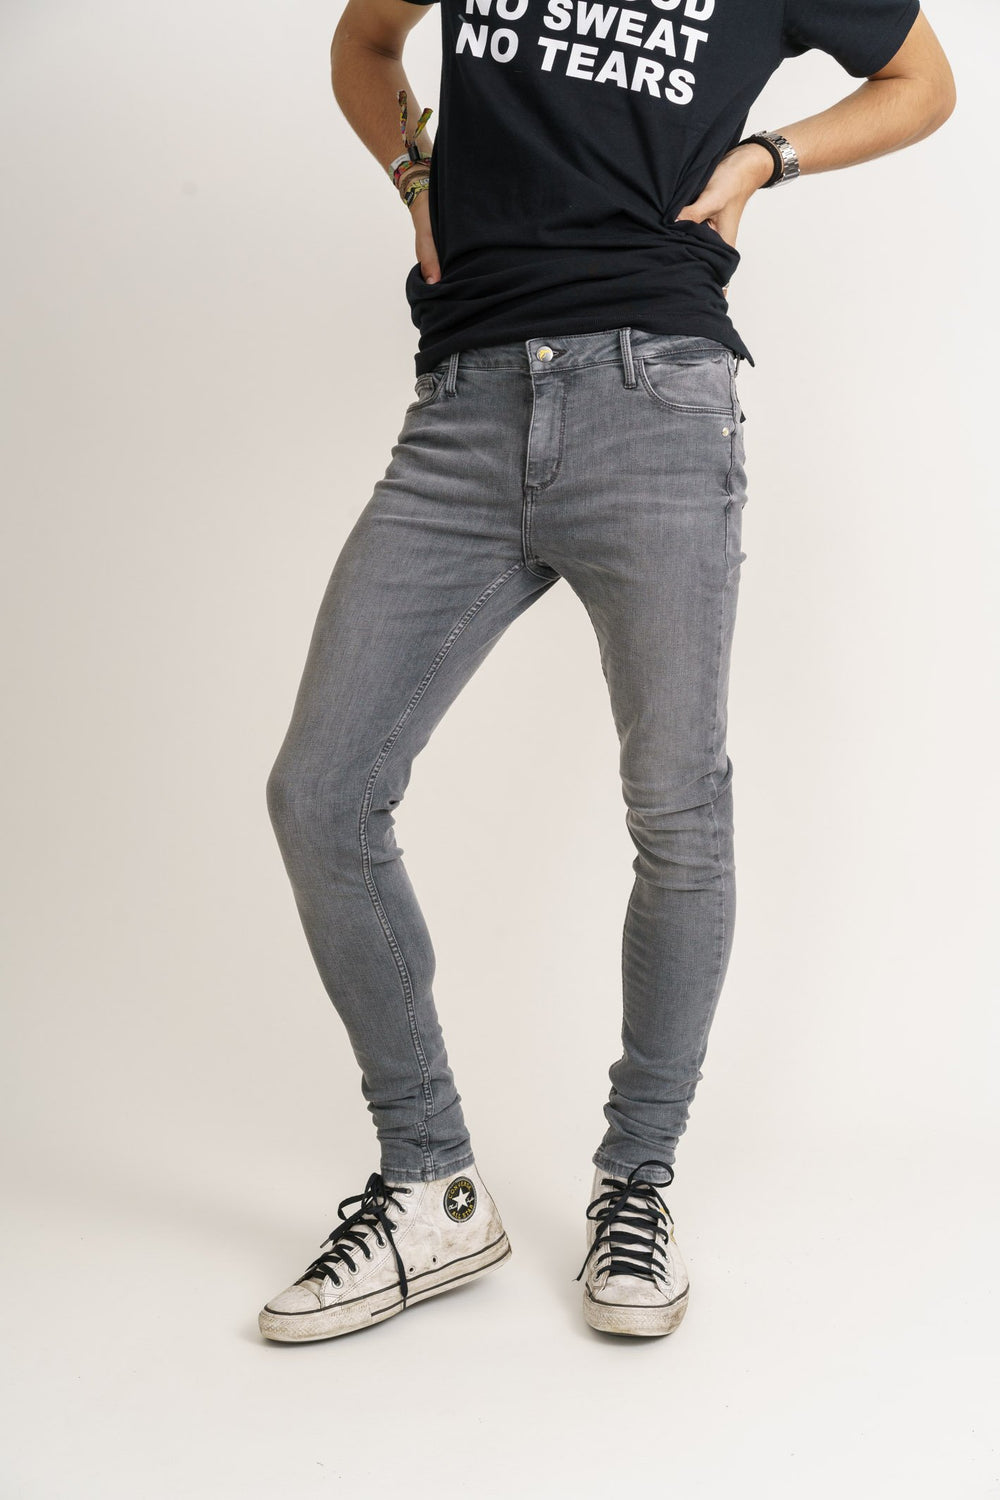 Organic Flex Super Skinny Jeans in Light Grey Wash - Monkee Genes, Organic Jeans, Eco Jeans, Sustainable Jeans, Green Jeans, Ethical Fashion, Mens Chinos